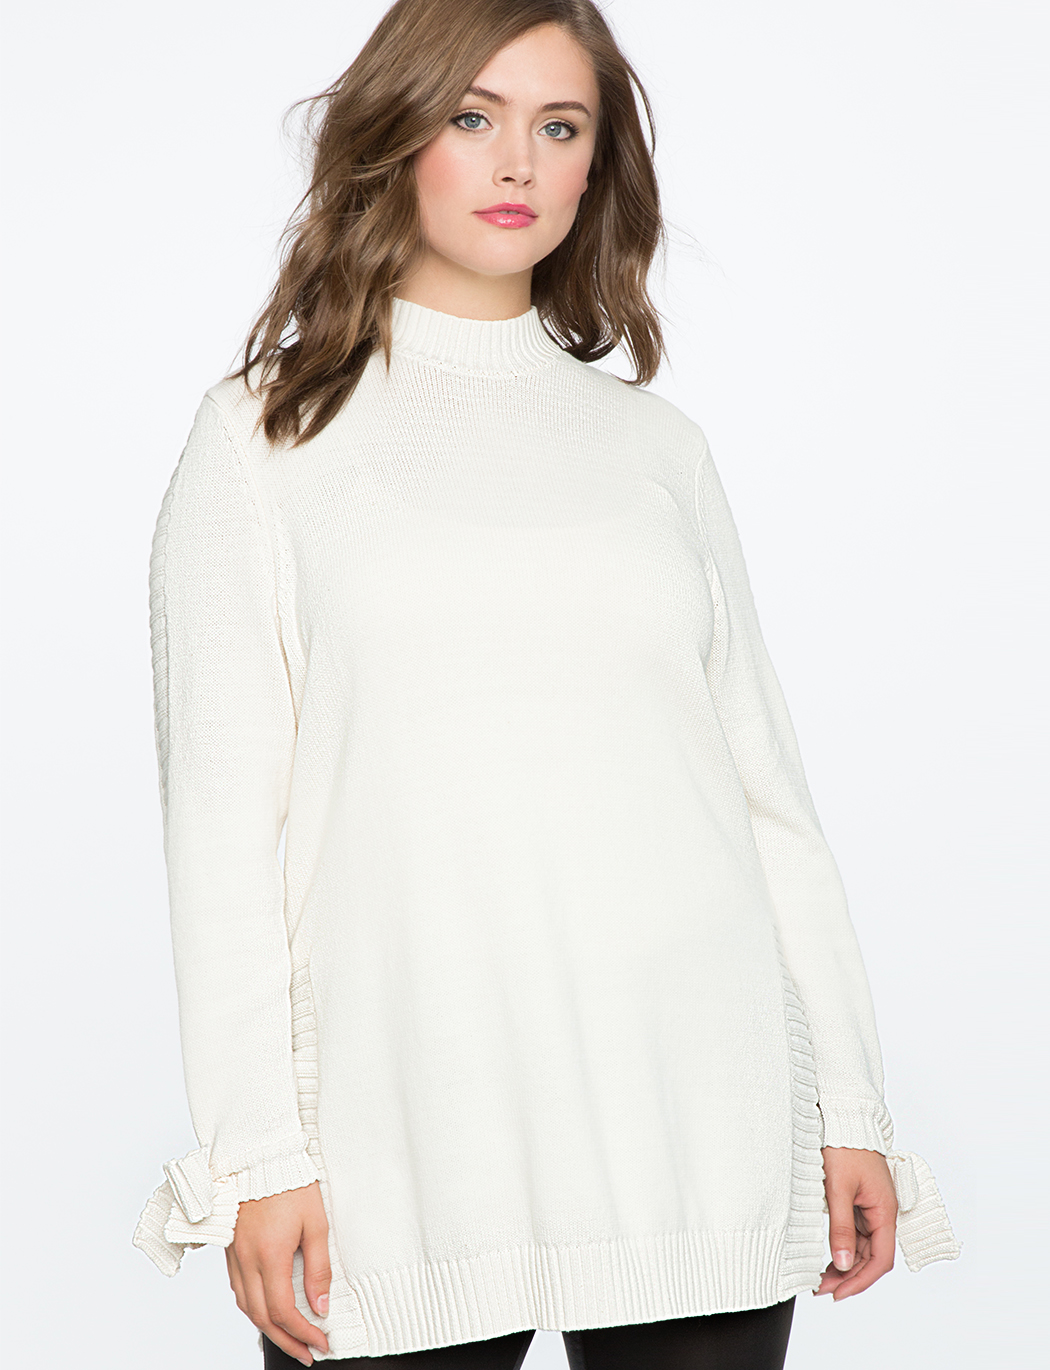 ed2e591b84c Tie Sleeve Tunic Sweater with Slits | Women's Plus Size Tops | ELOQUII